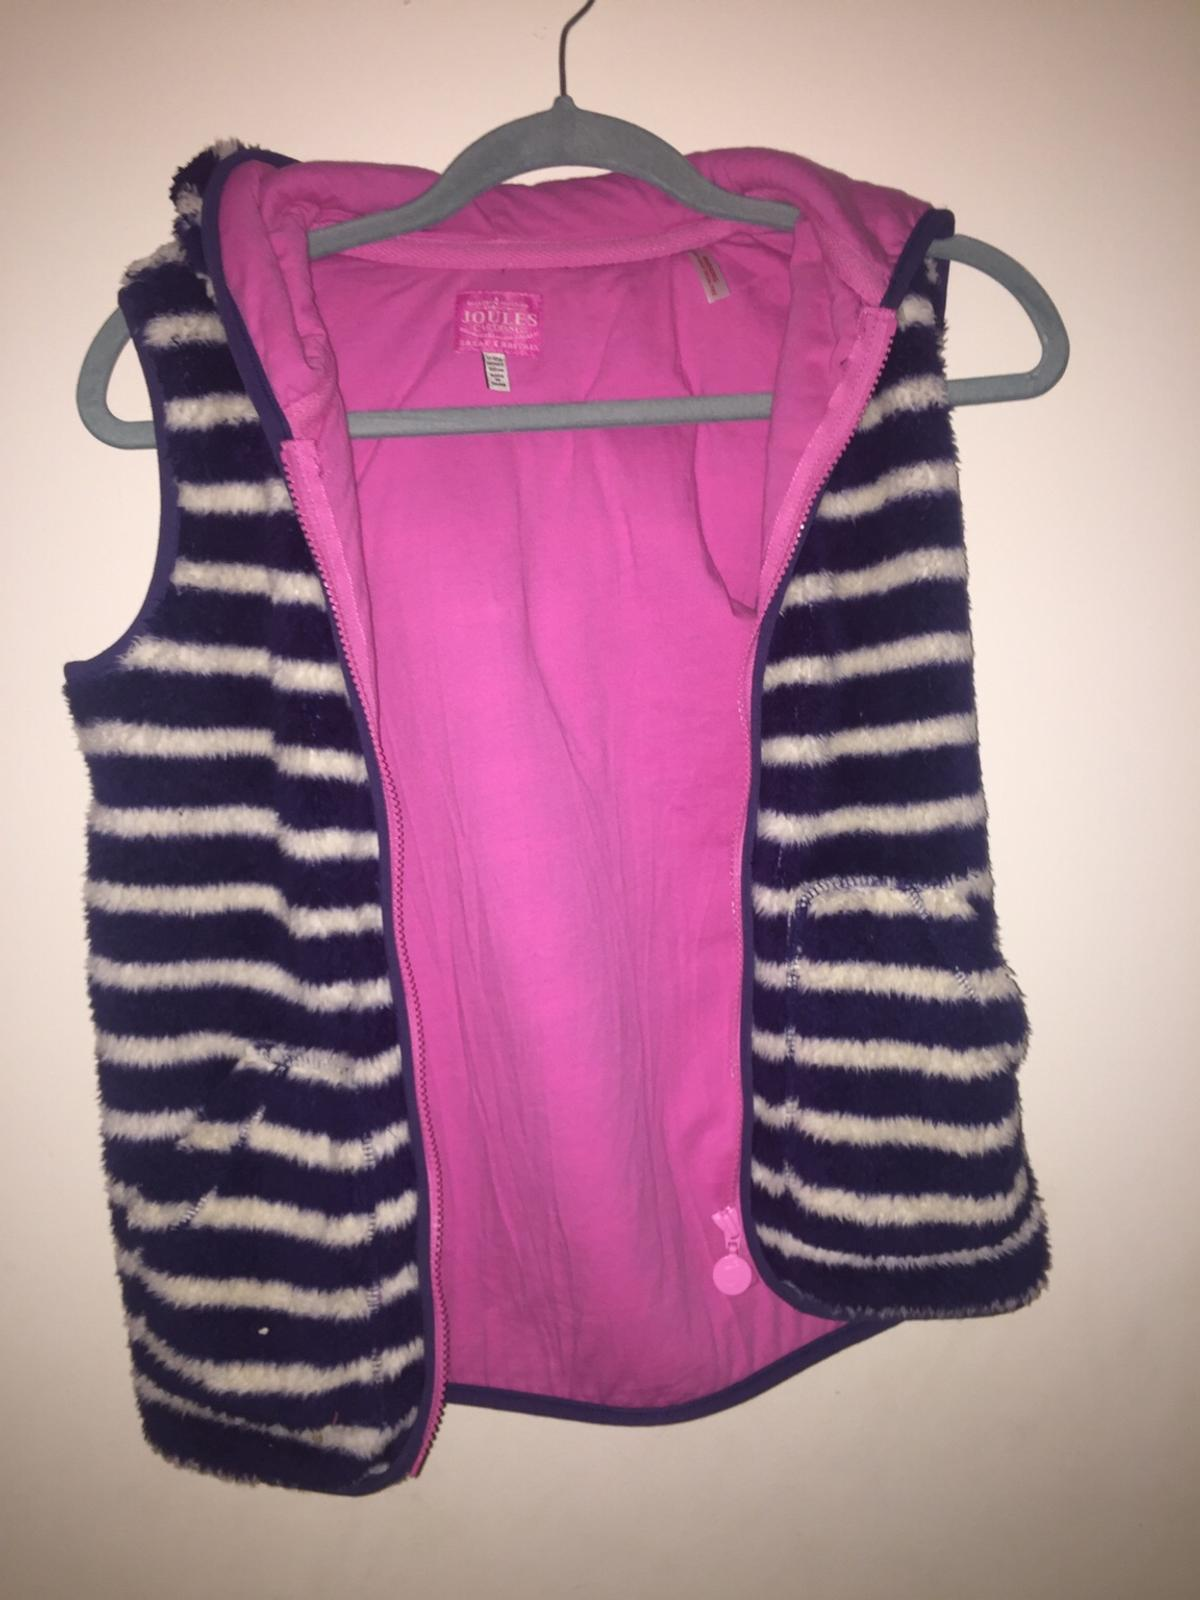 It's fluffy on outside and has pink material on inside. It has a hood and zips up. Size 11-12 years old.